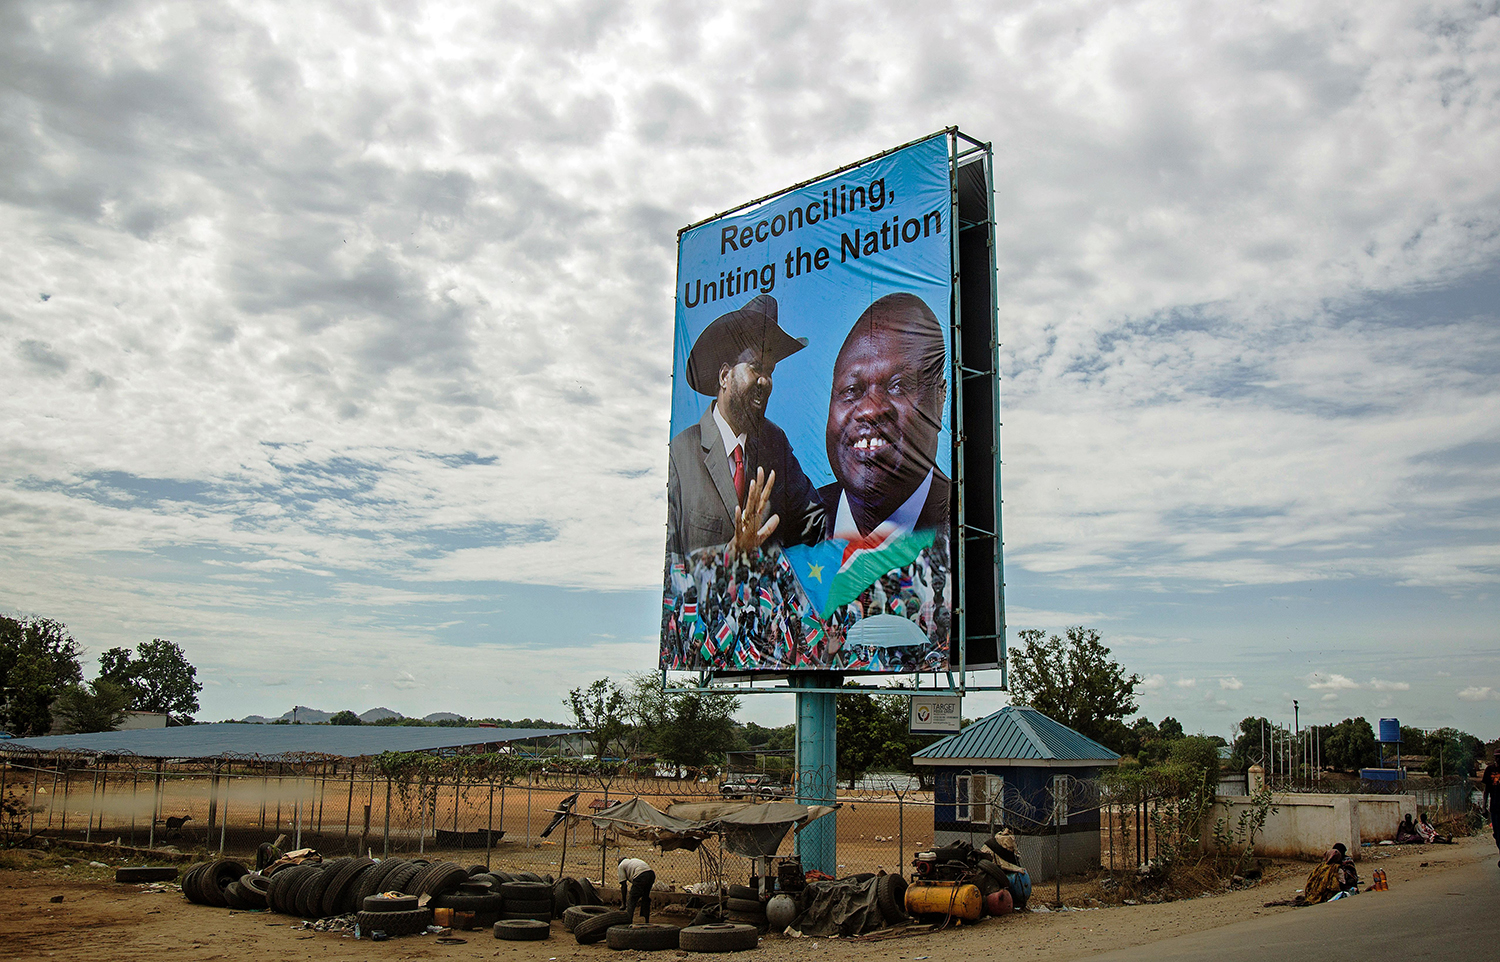 A billboard featuring portraits Kiir and the opposition leader Riek Machar is displayed in Juba, South Sudan, on April 14, 2016.